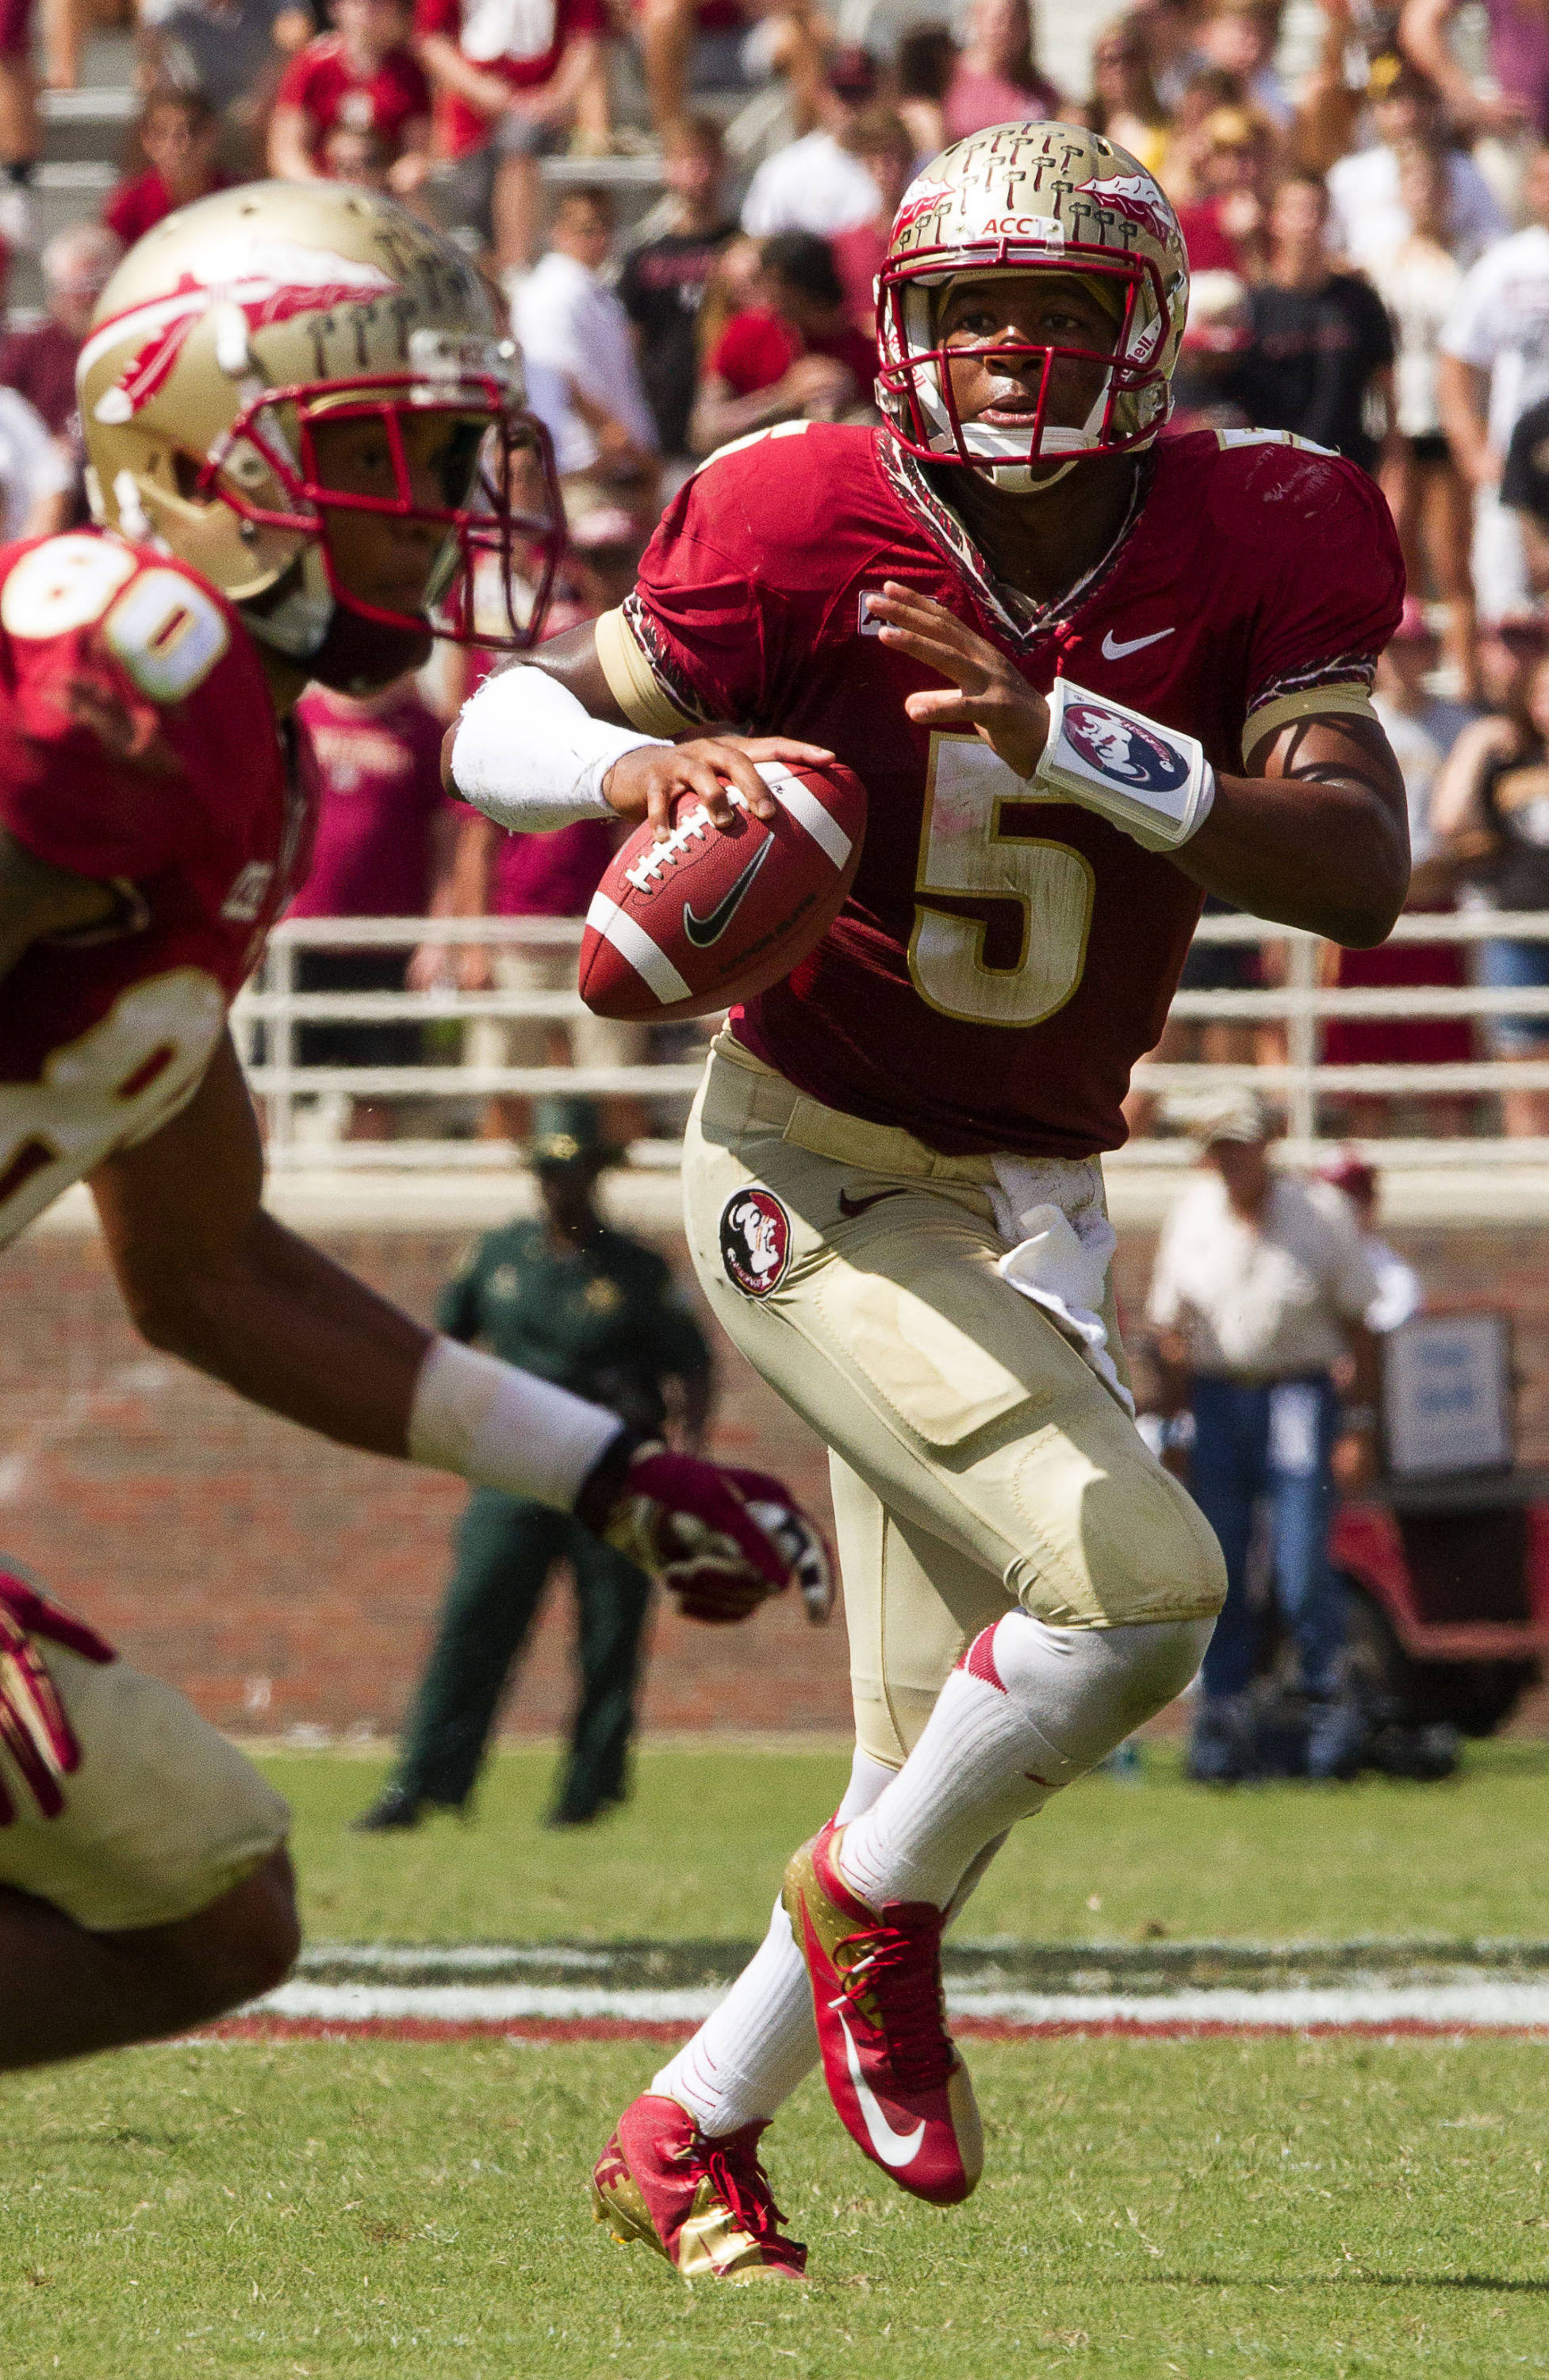 Jameis Winston (5) drops back to pass during FSU Football's 63-0 shutout of Maryland on Saturday, October 5, 2013 in Tallahassee, Fla.